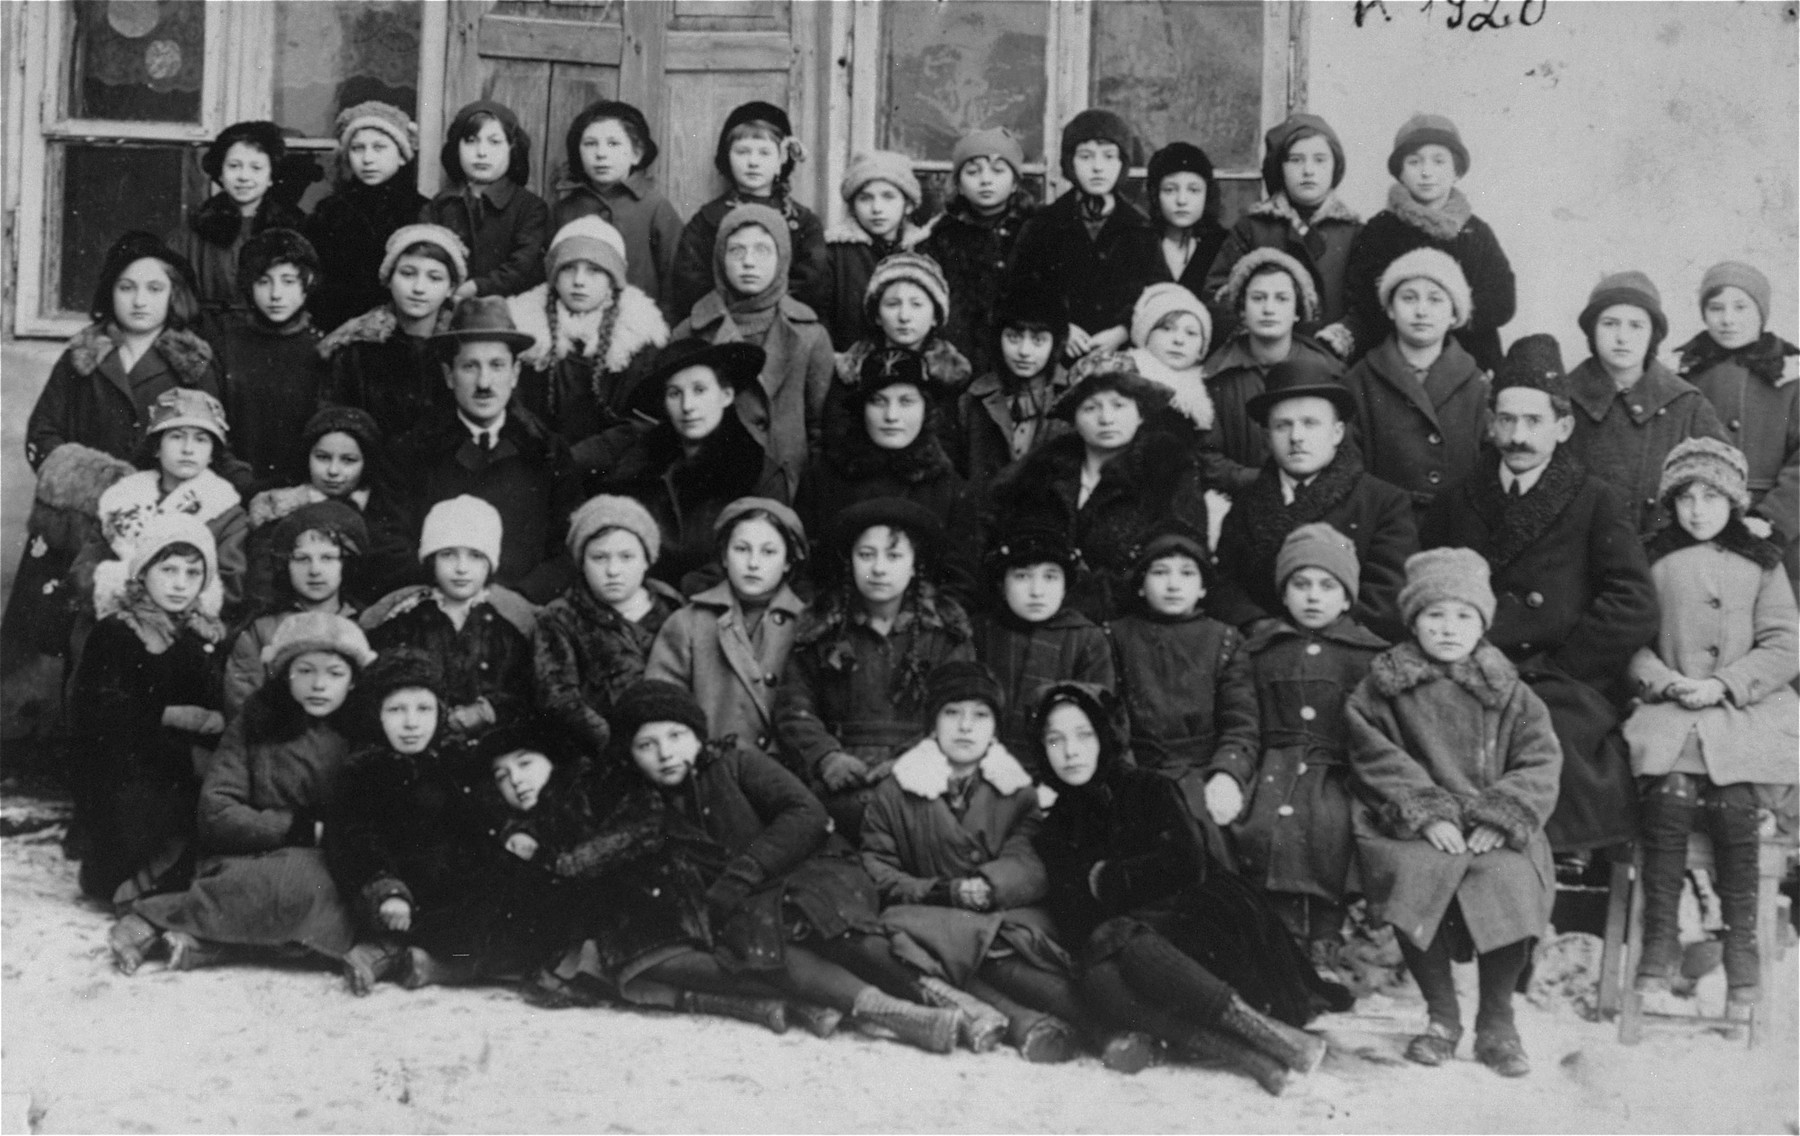 Class portrait at a public elementary school in Vilna.  Raya Magid is pictured in the front row, second from the left.